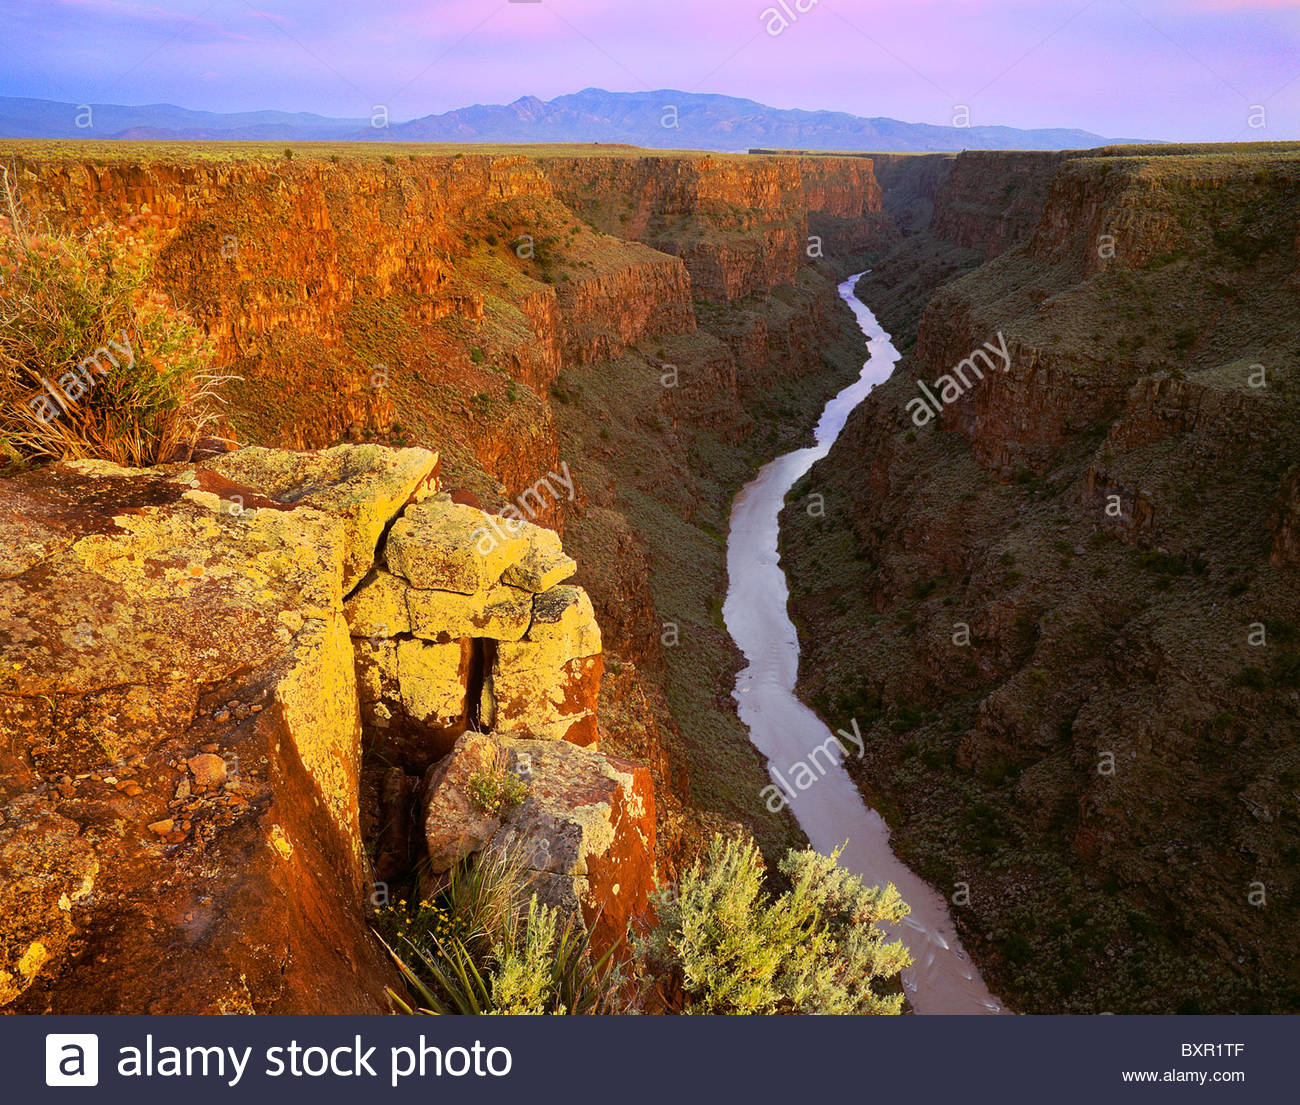 The 'Taos Box' 'Rio Grande' [Sangre de Christo Mountains] sunset from north of the 'Rio Grande - Stock Image